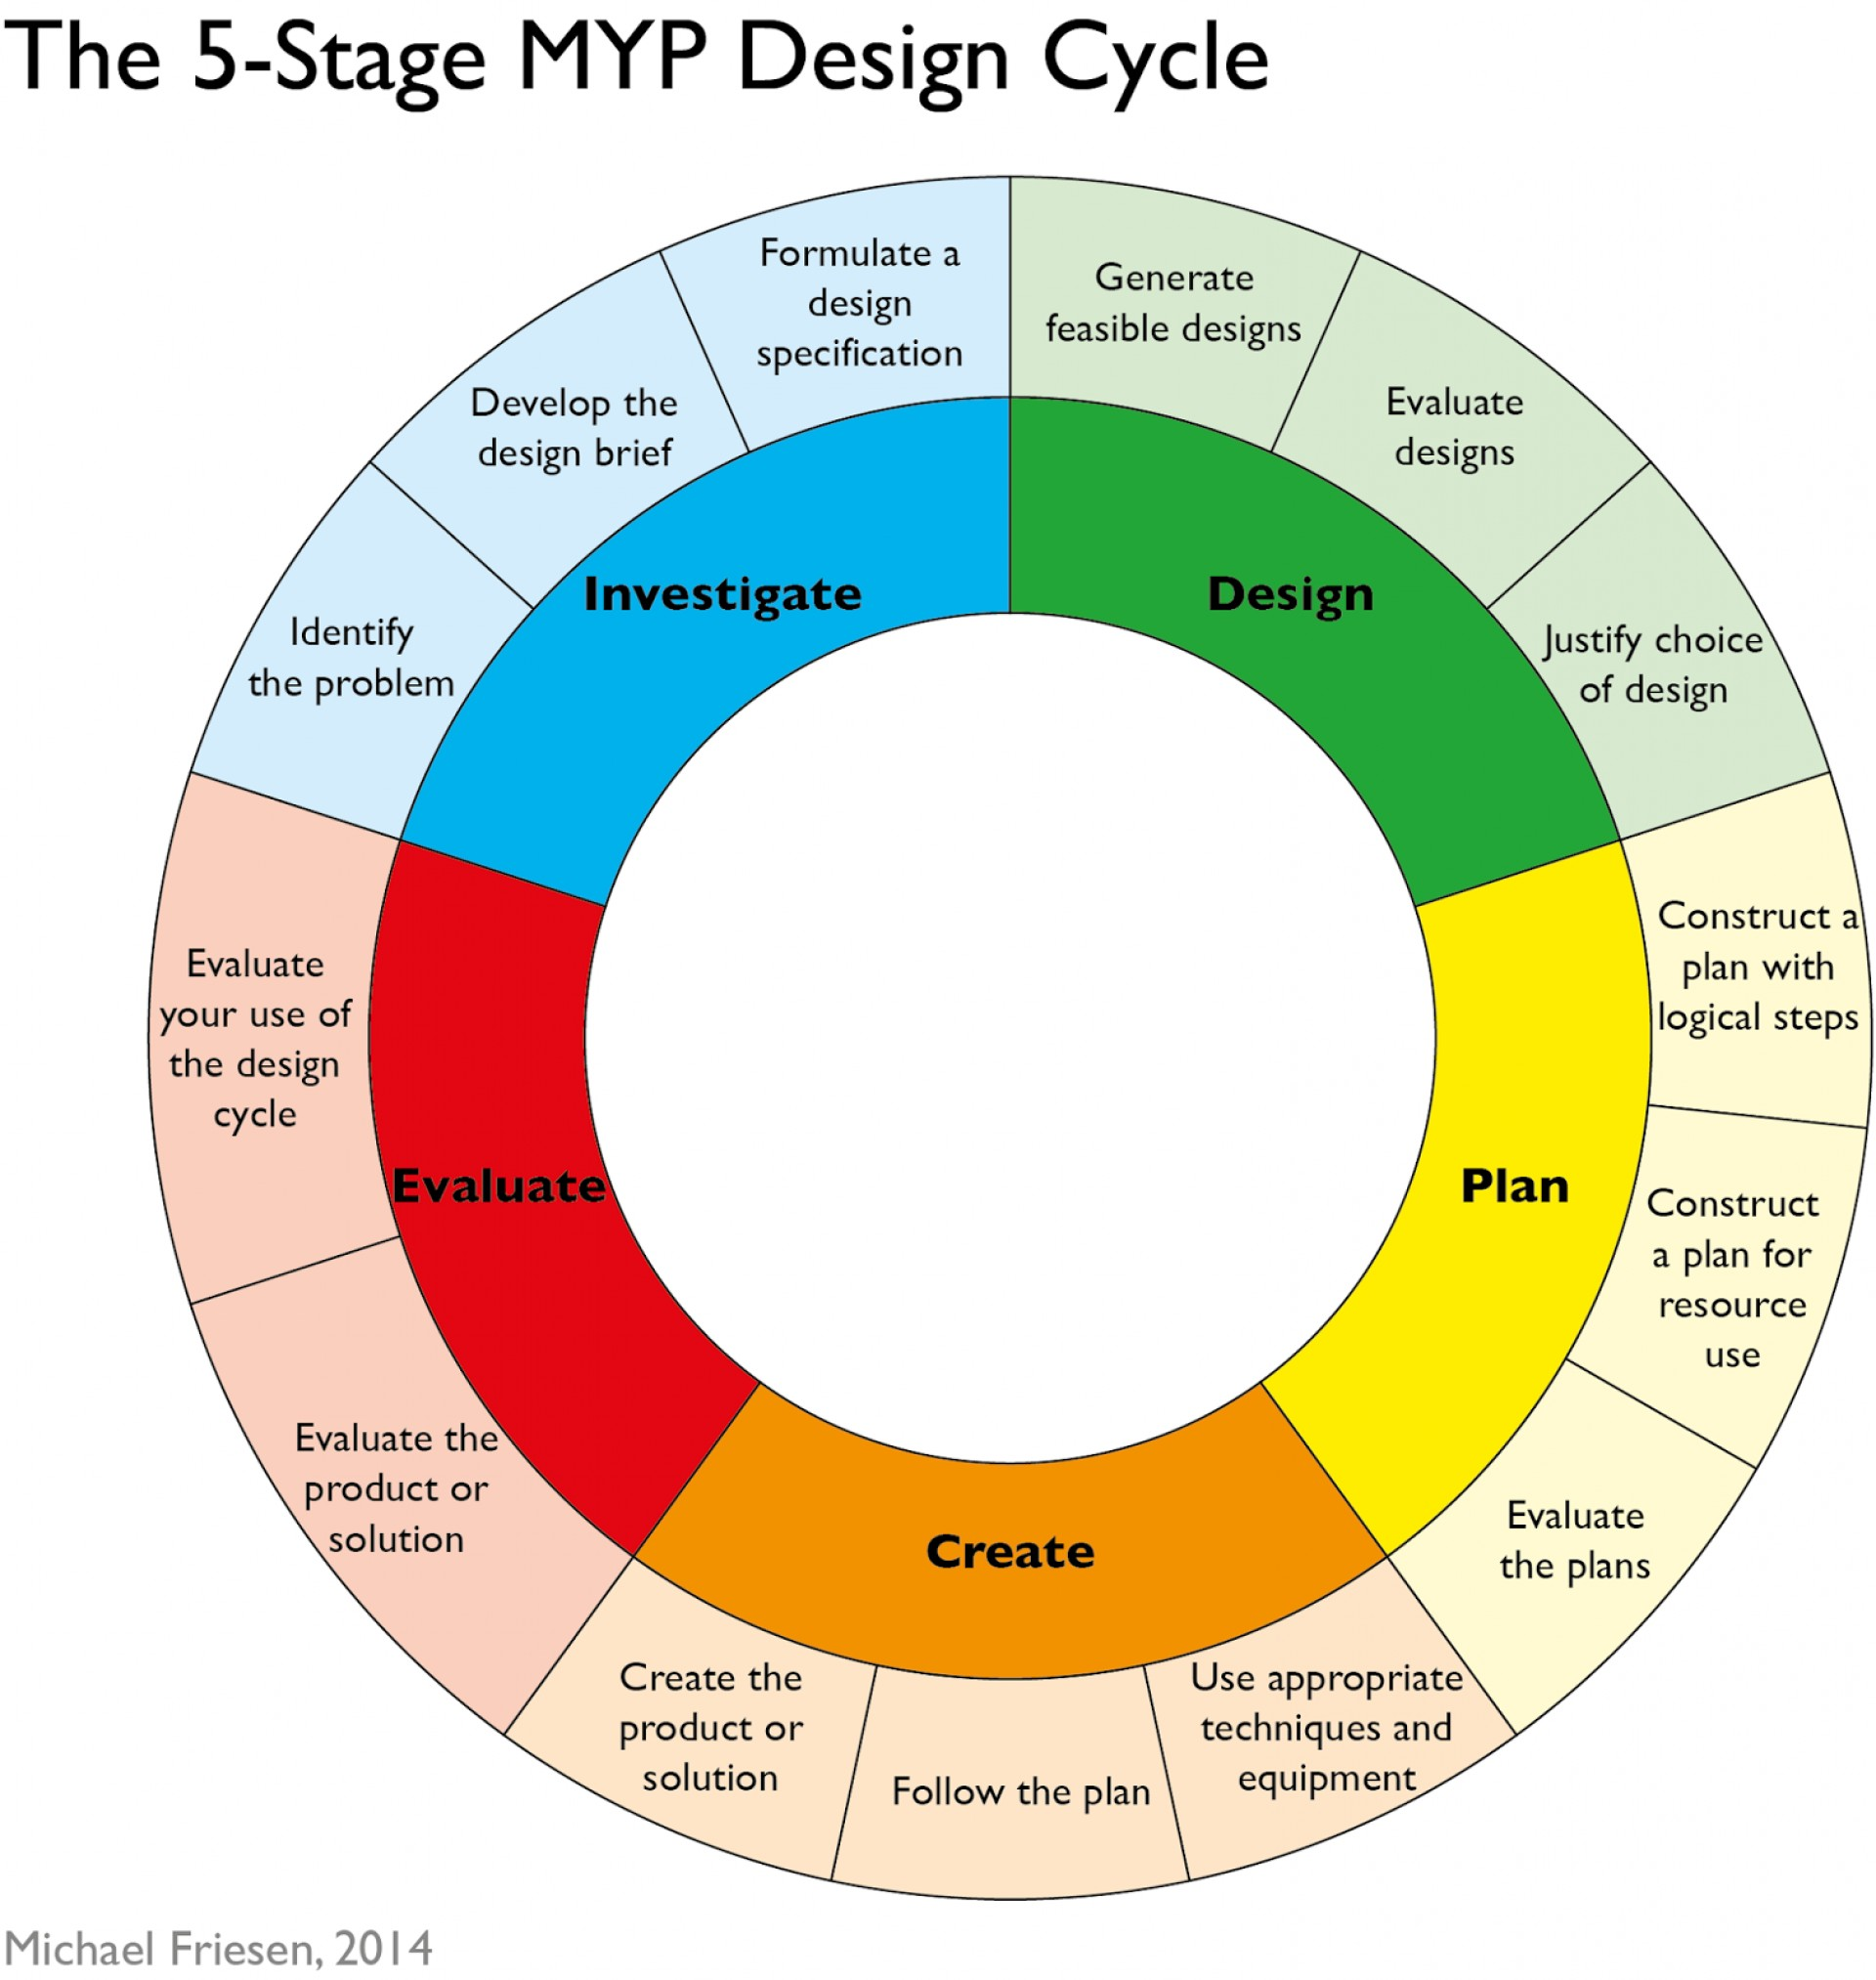 010 Myp Design Cycle 5 Stages Png Essay Example Personal Project Exceptional Guide 1920